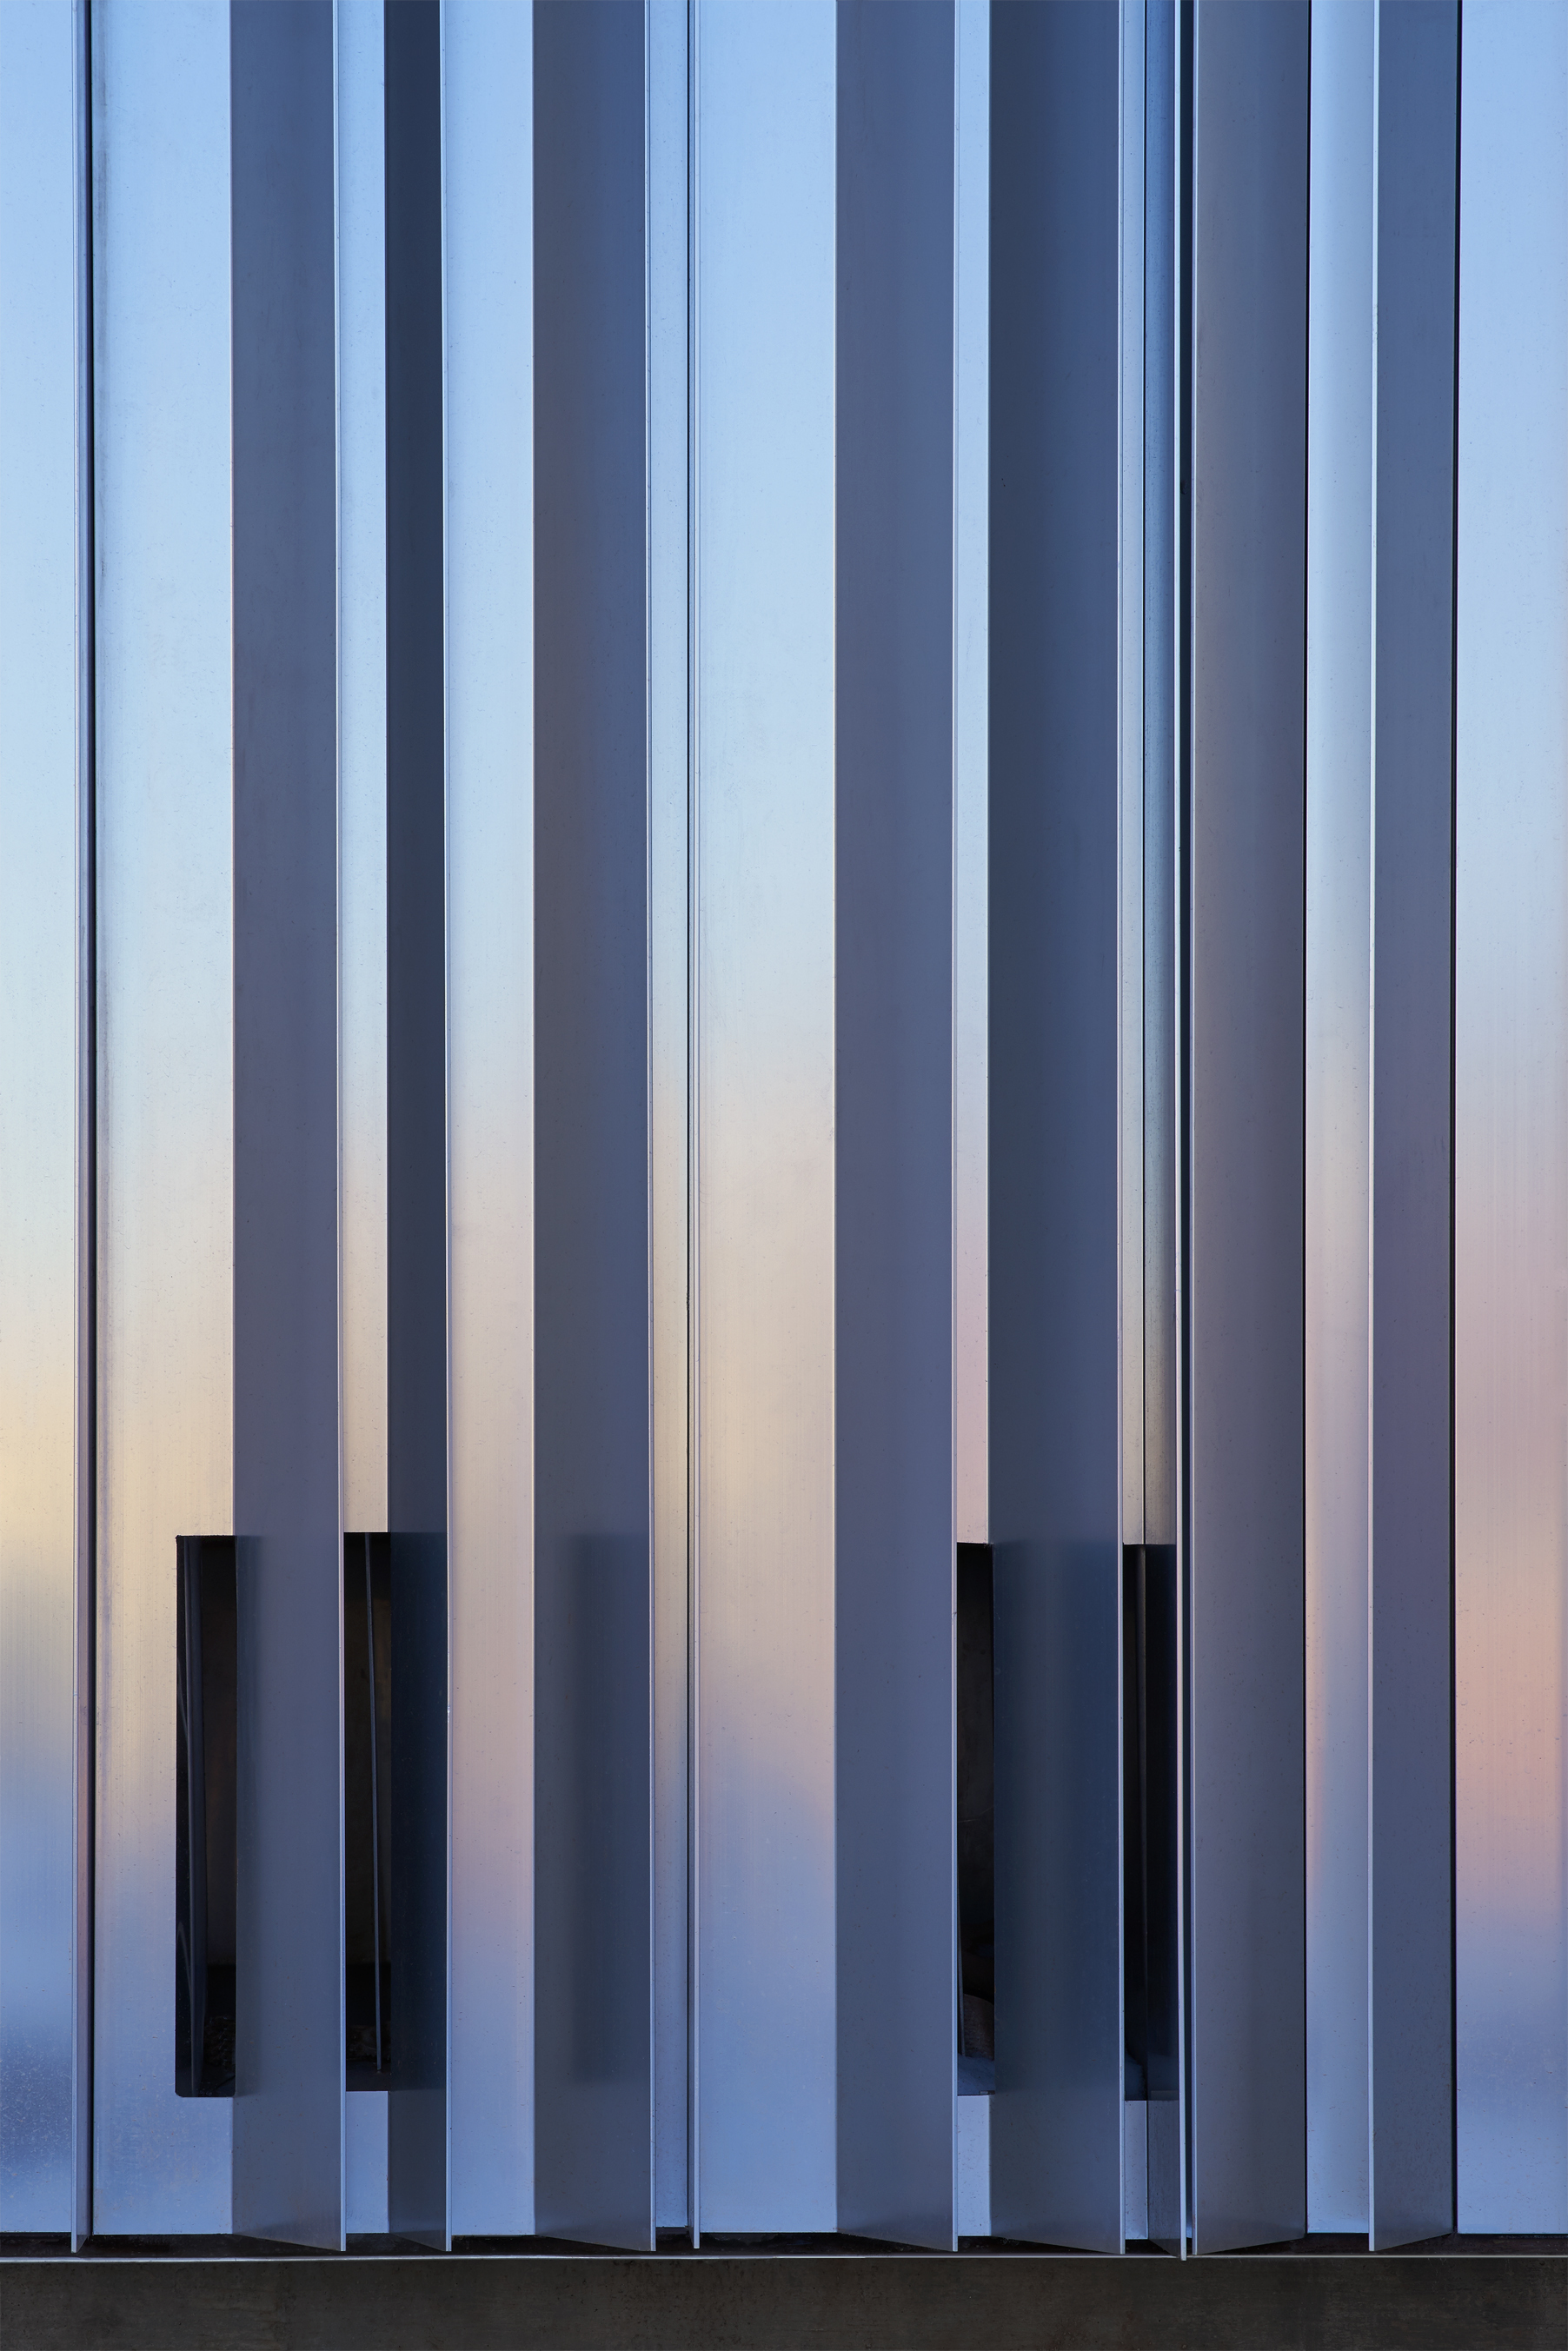 Detail shot of aluminum strips reflecting the pink and purple colors of a sunset